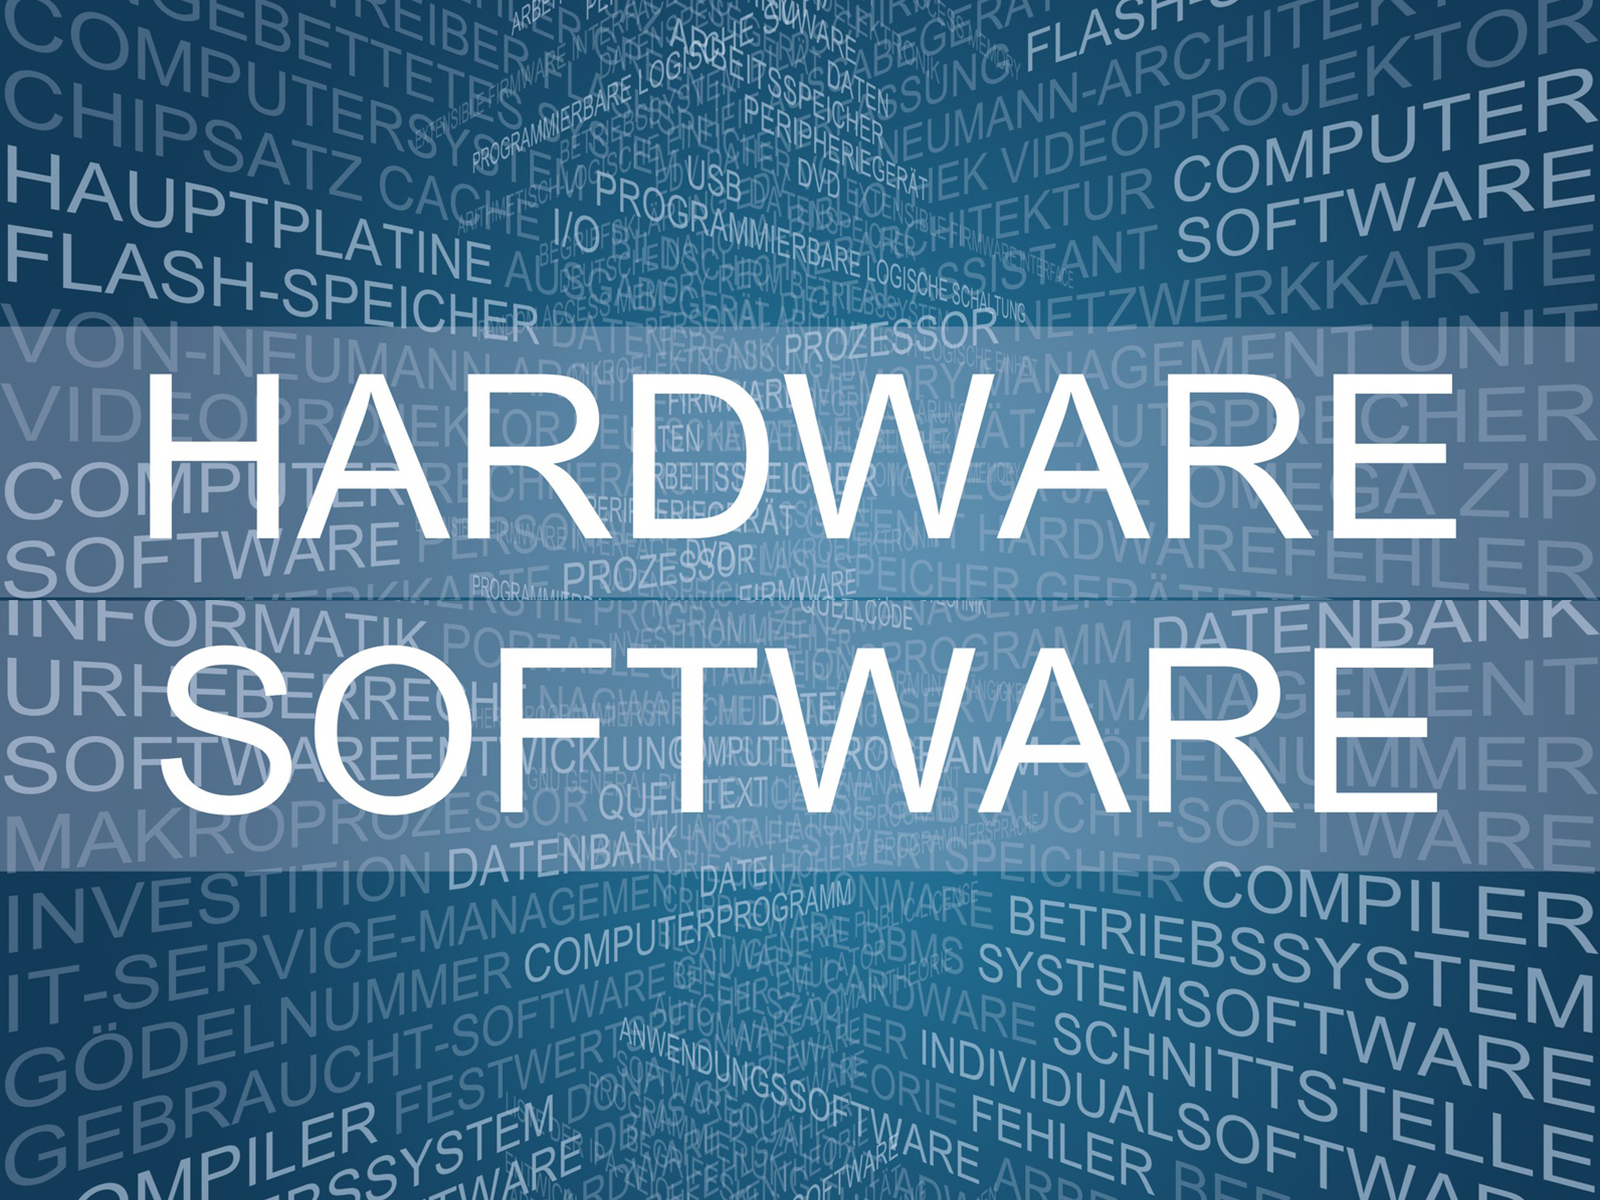 Hardware & Software Co-Design